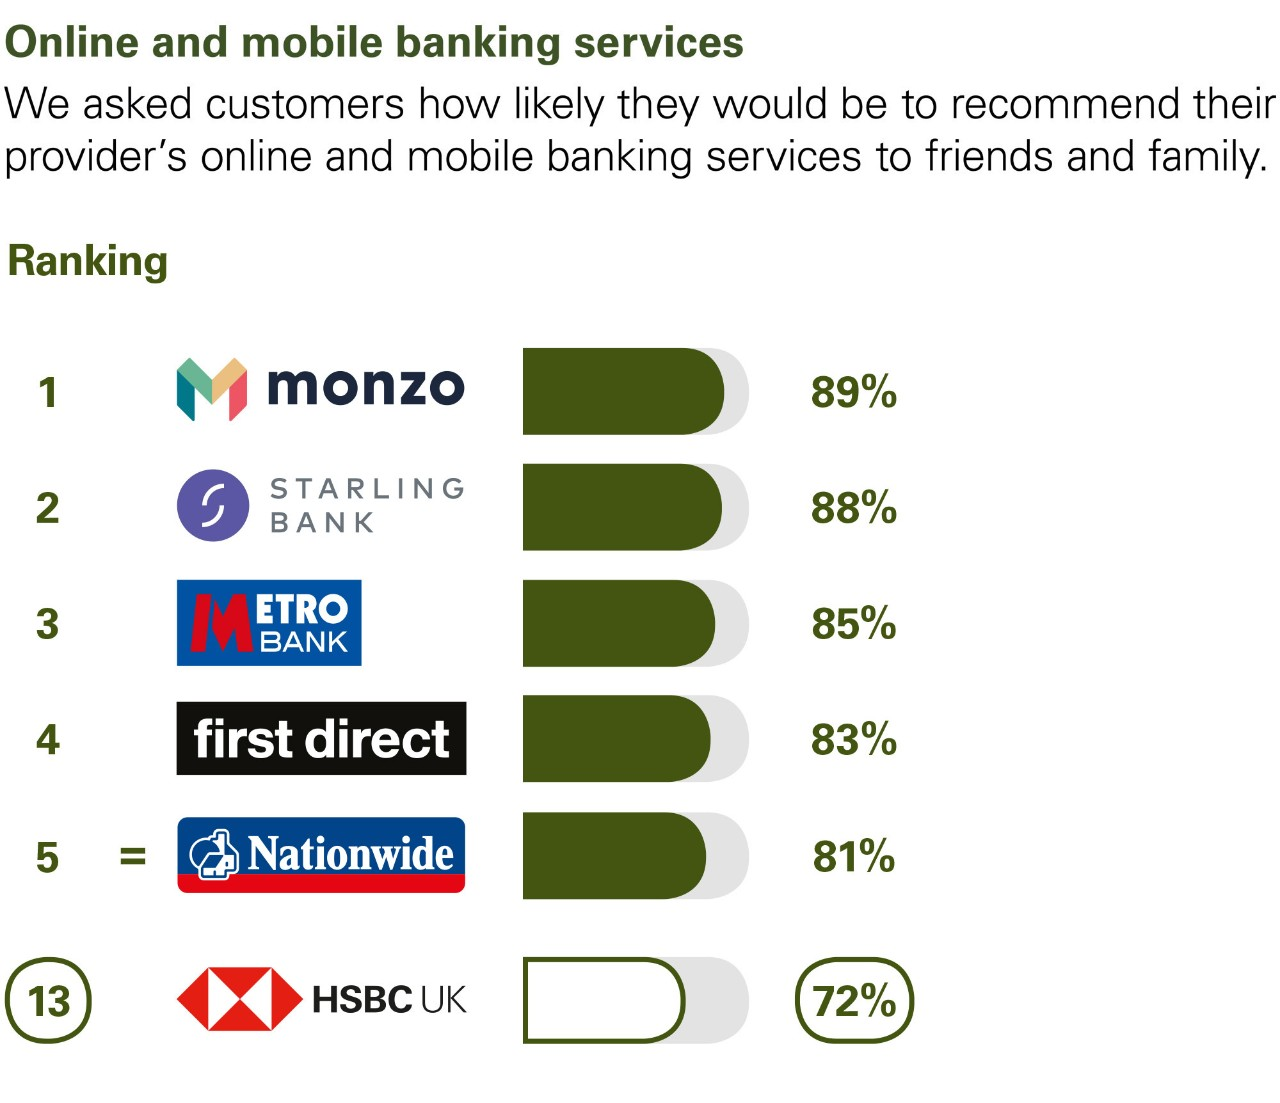 Online and mobile banking services. We asked customers how likely they would be to recommend their provider's online and mobile banking services to friends and family. Ranking: 1 Monzo  89%. 2 Starling Bank 88%. 3 Metro Bank 85%. 4 first direct 83%. 5 Nationwide 81%. 13 HSBC UK 72%.